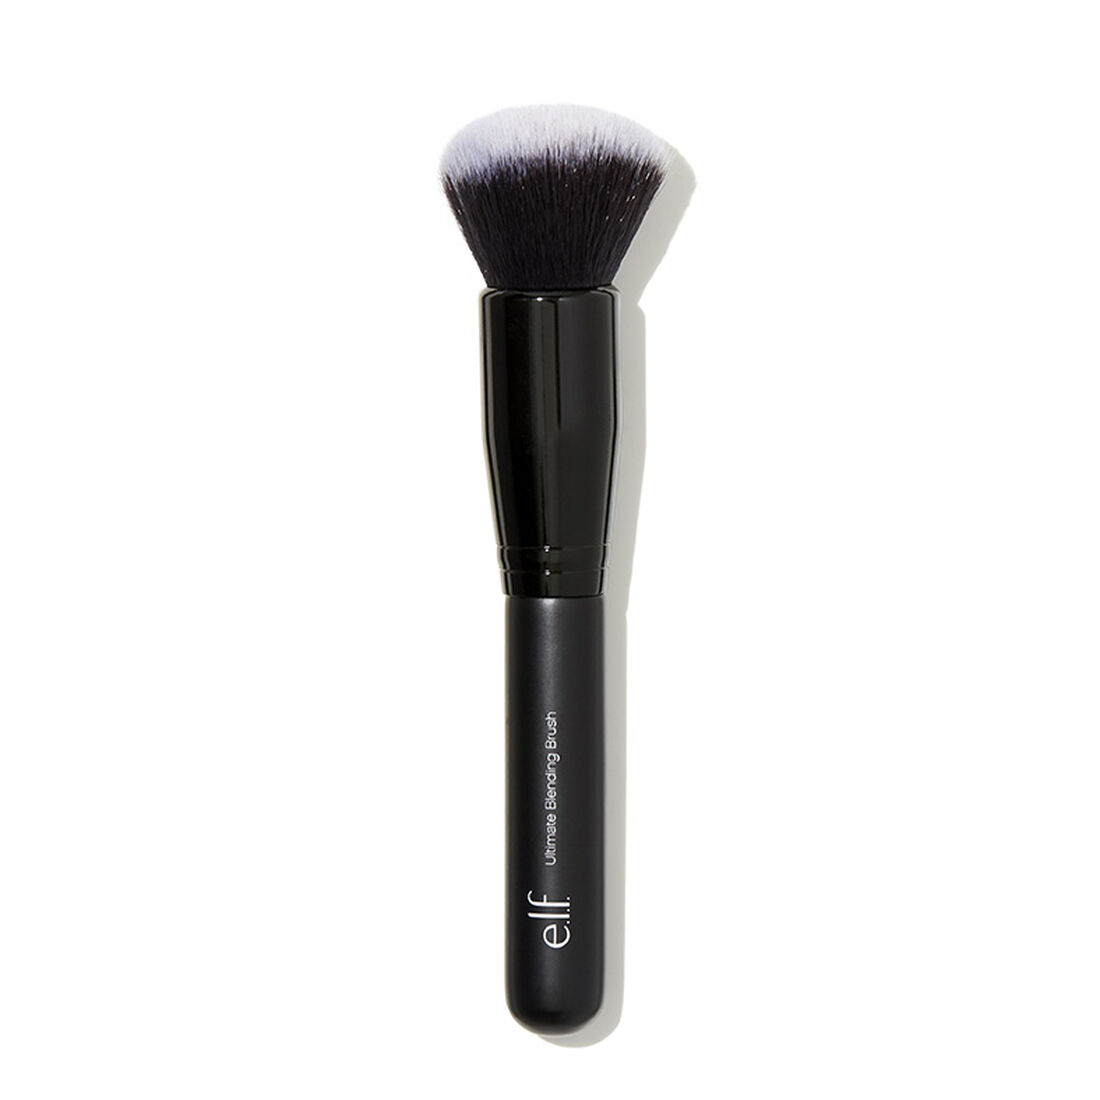 E.l.f. - Ultimate Blending Brush